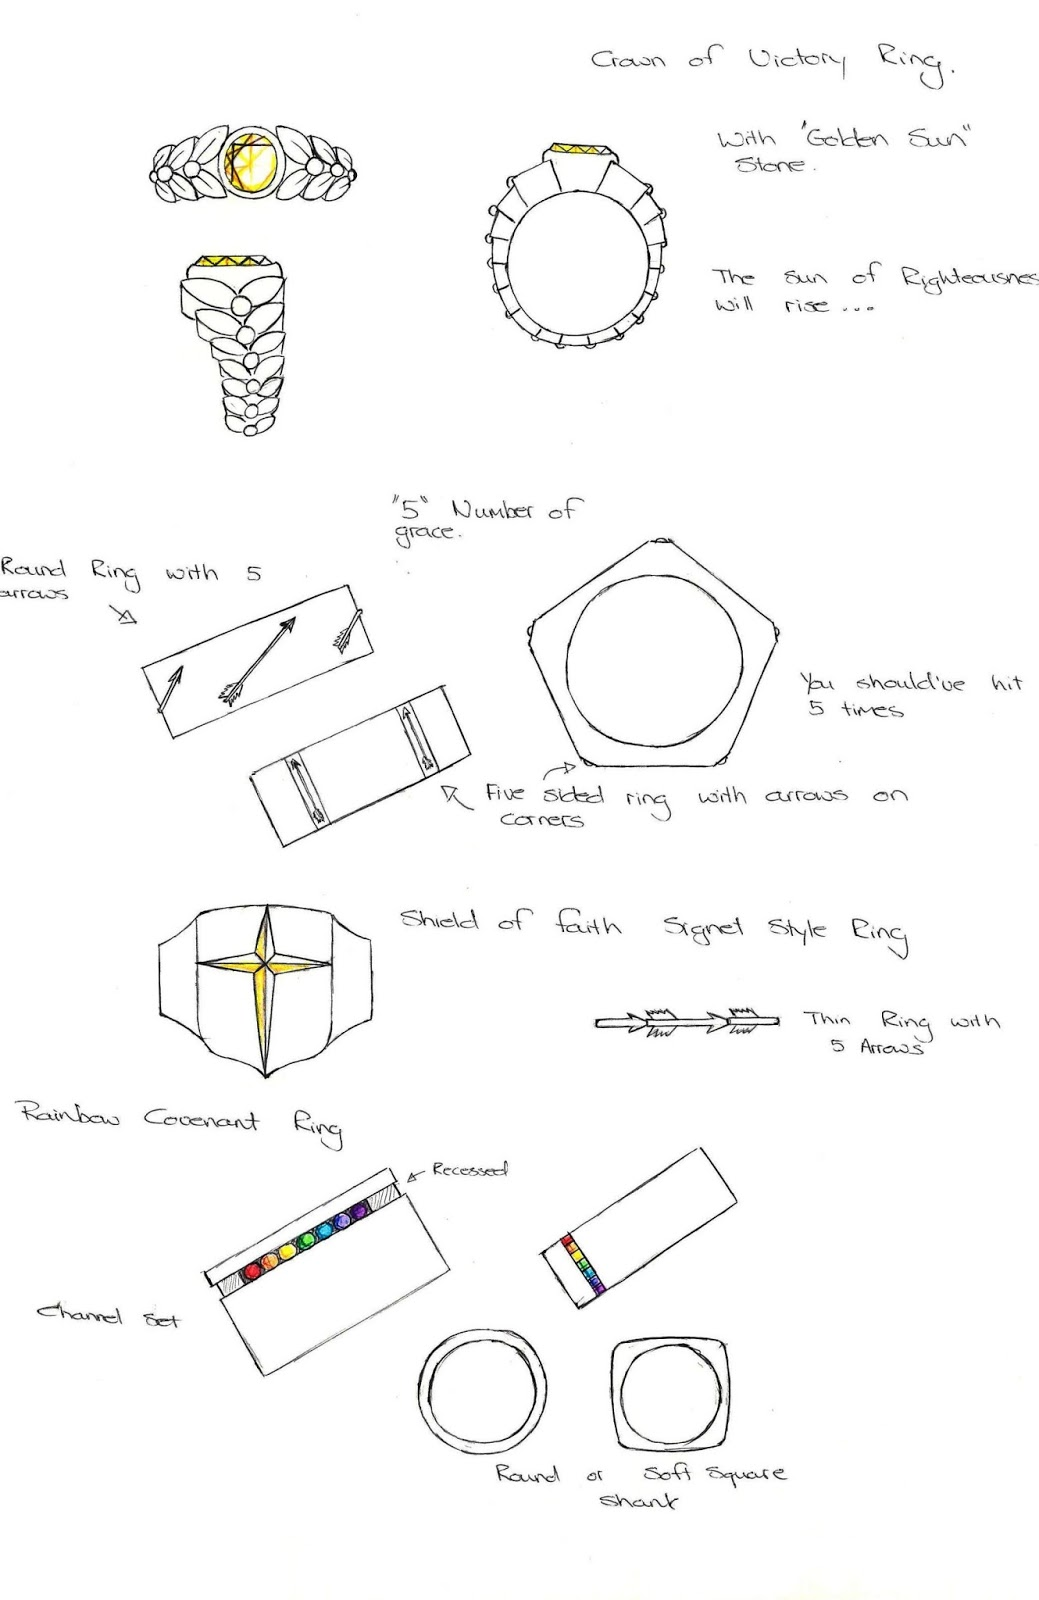 Designing Technical Drawings in The Jewellery Design